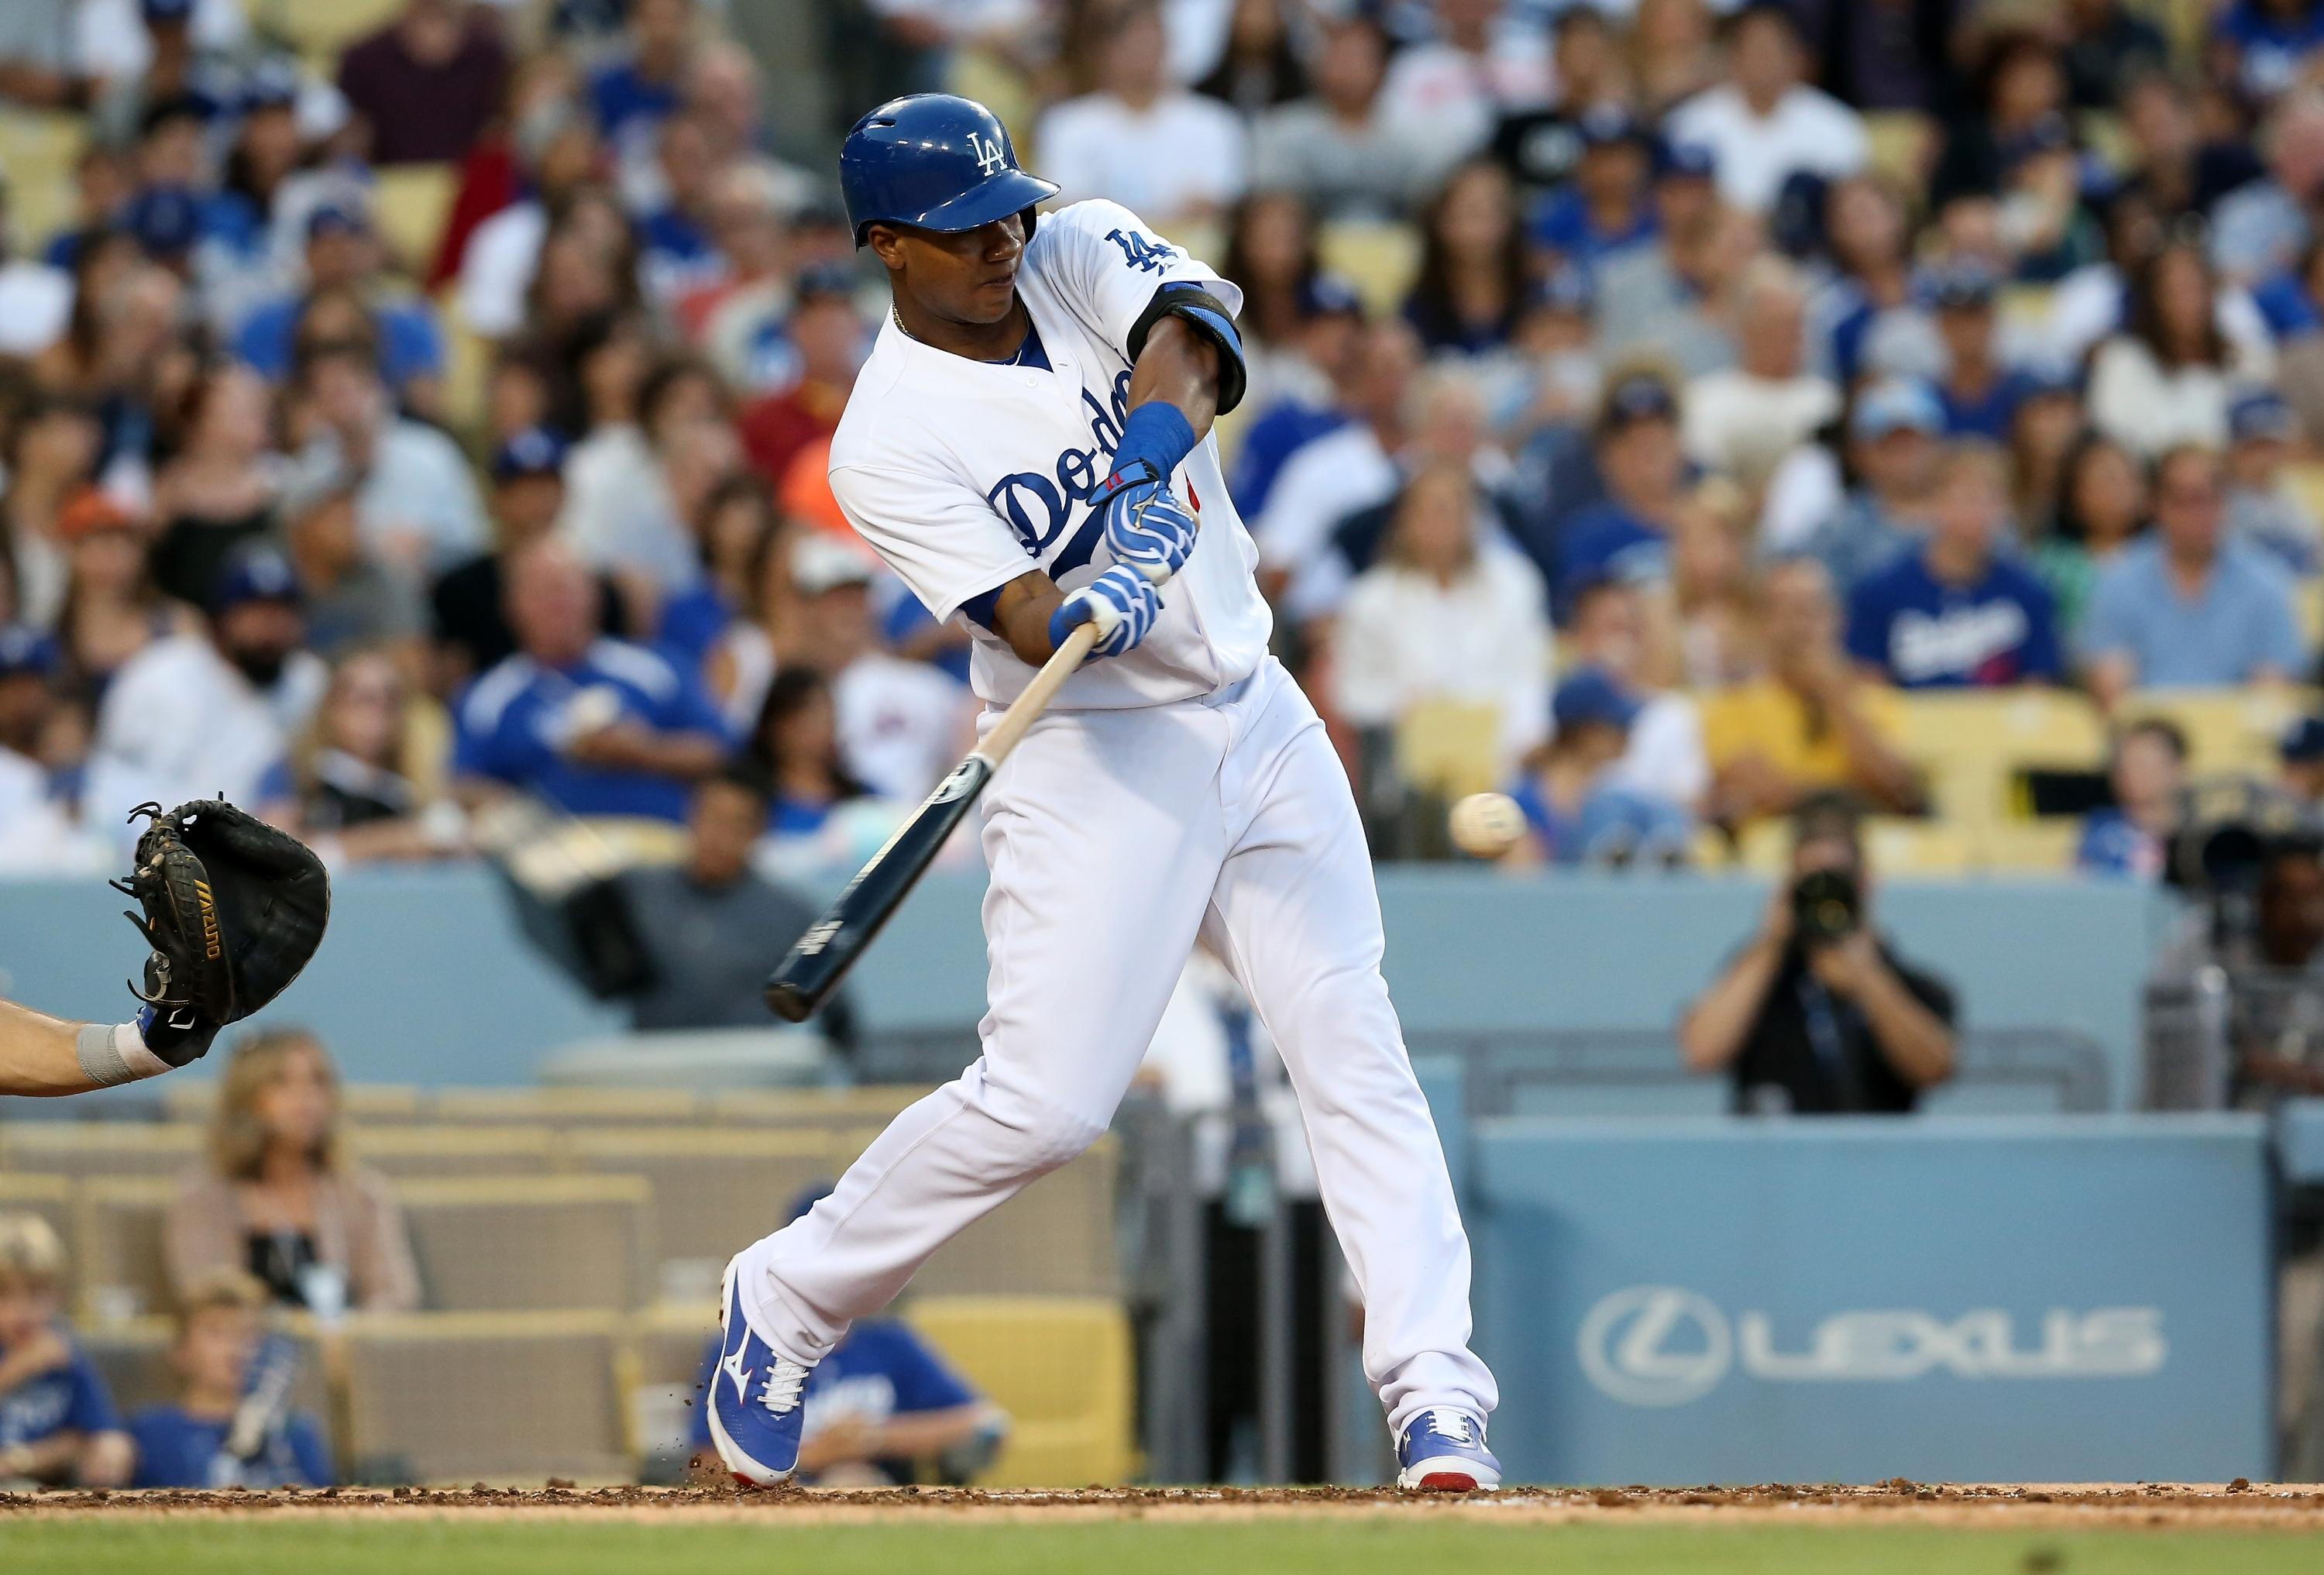 Dodgers suspend Erisbel Arruebarrena for the year due to contract issues